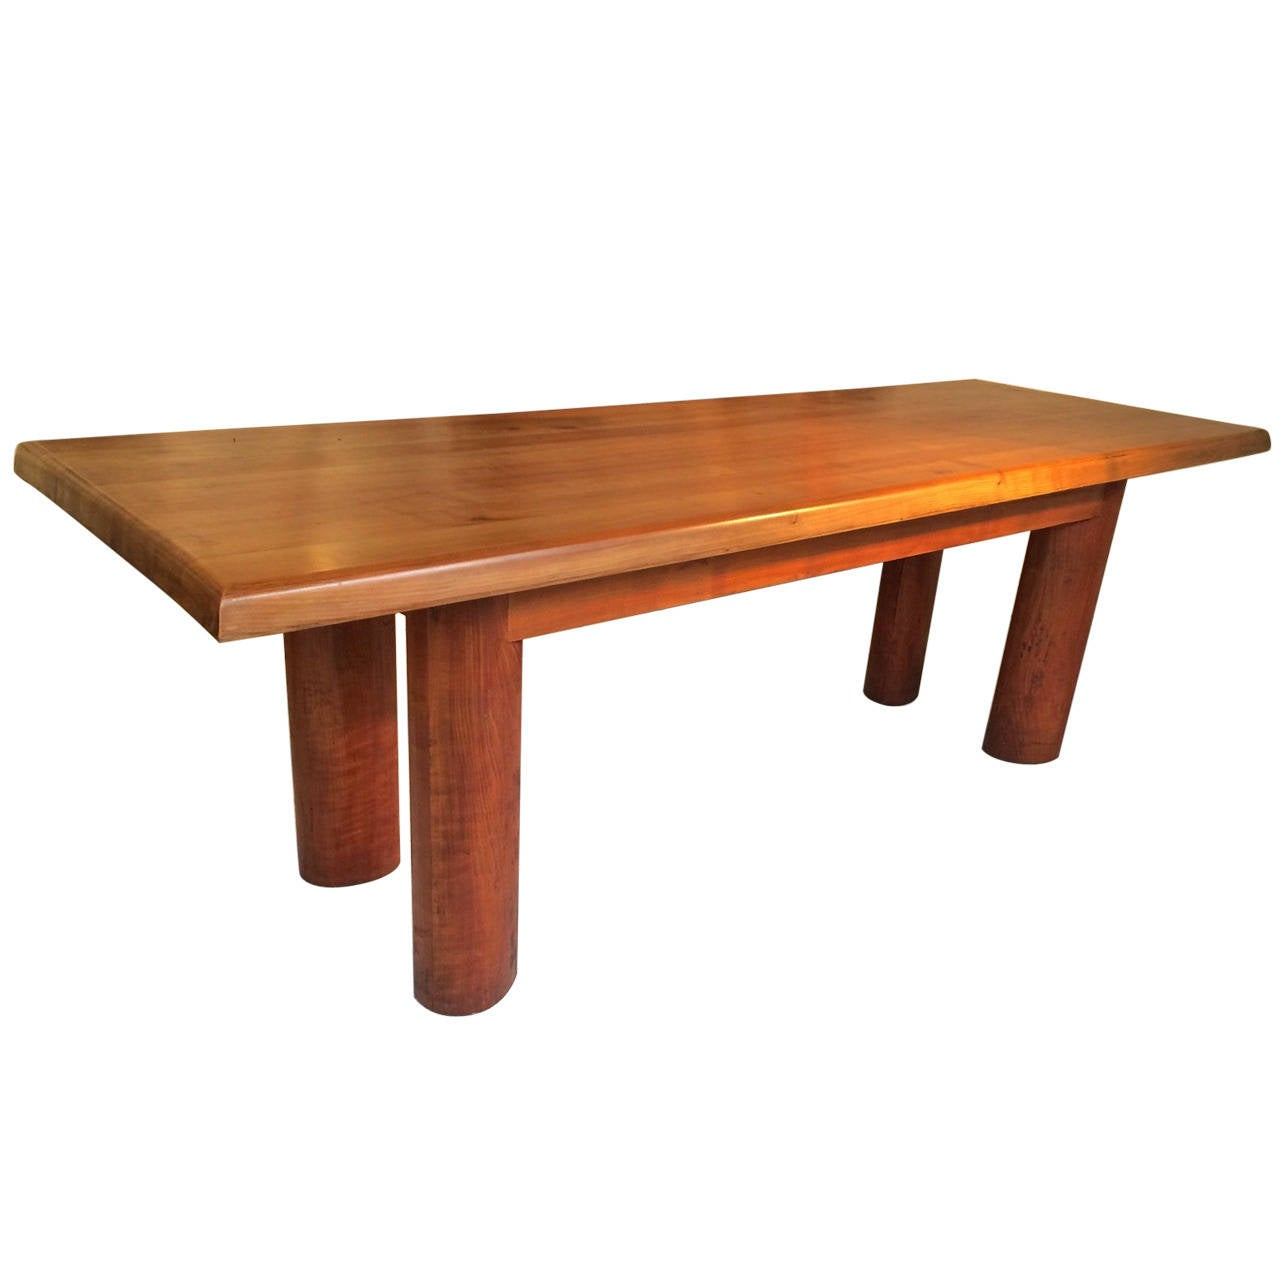 charlotte perriand style solid wood long table at 1stdibs. Black Bedroom Furniture Sets. Home Design Ideas